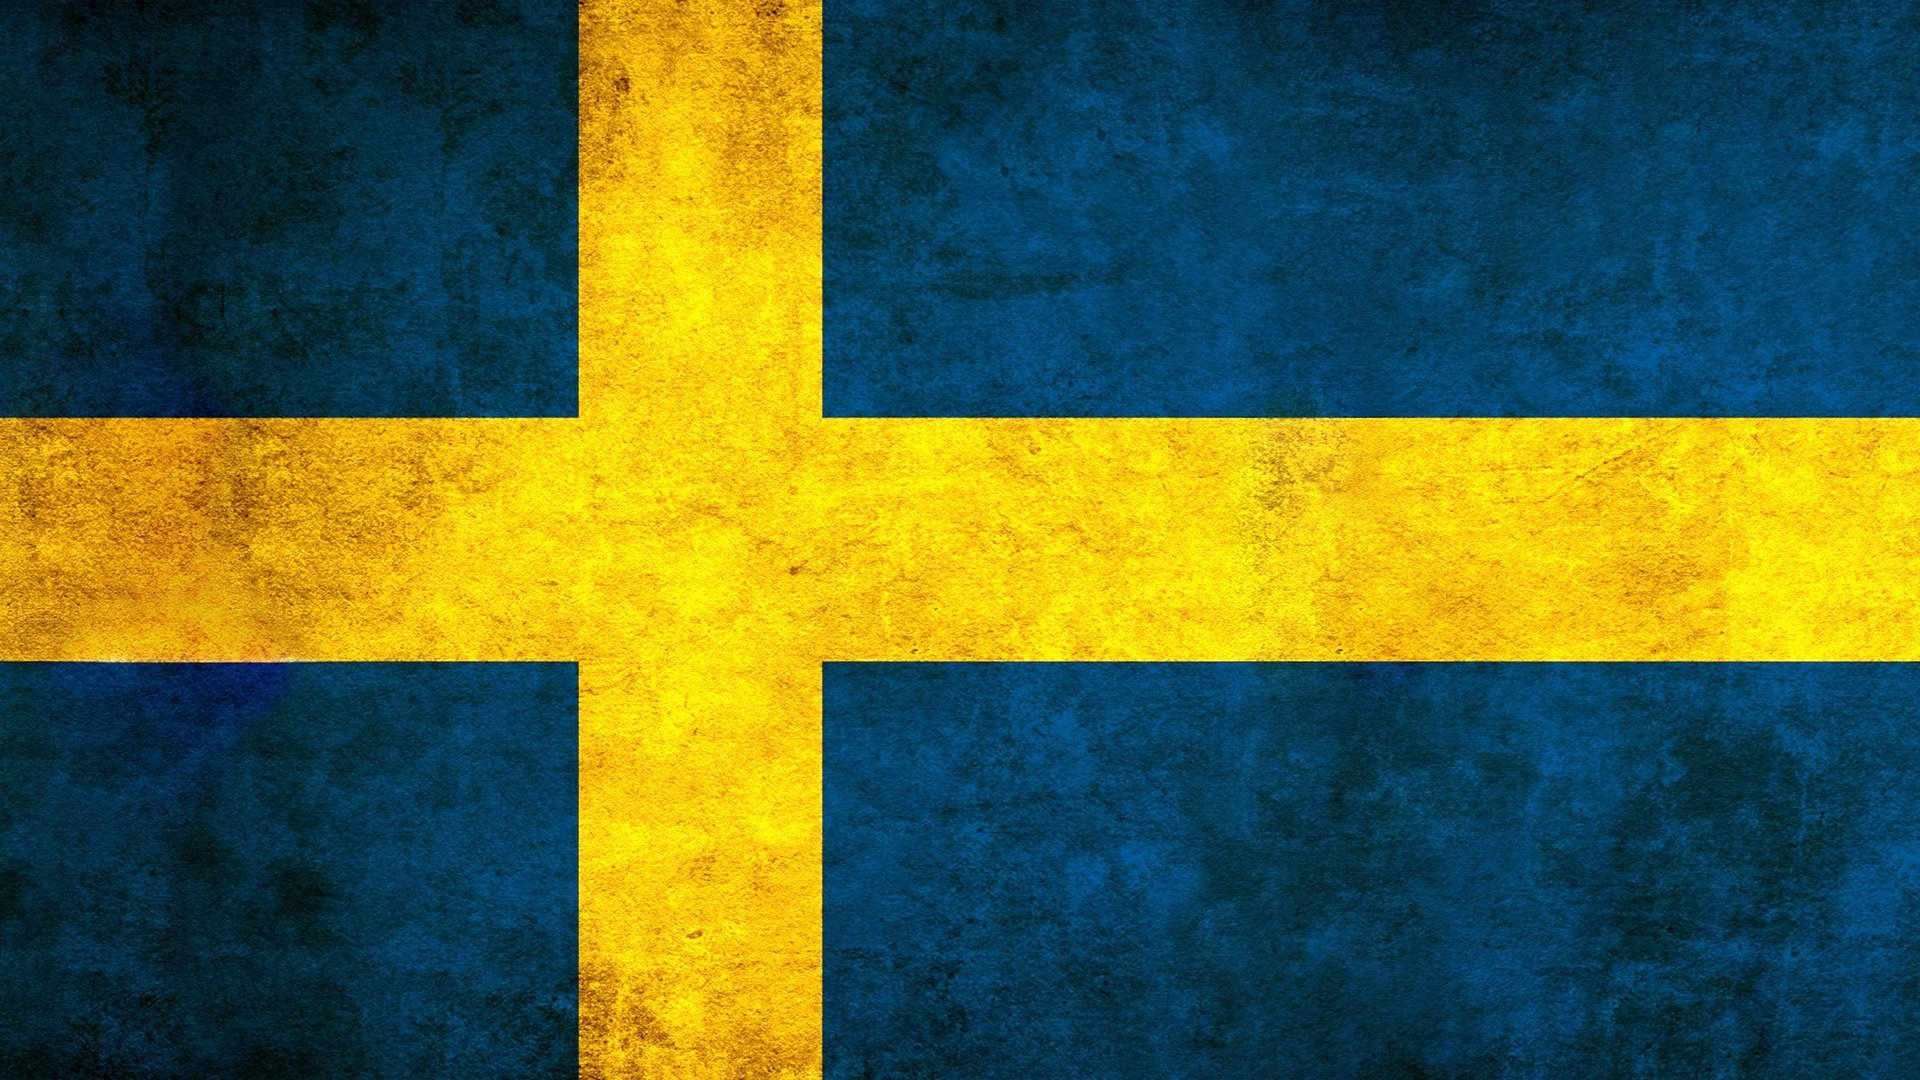 Flag Of Sweden Full HD Wallpaper And Background Image